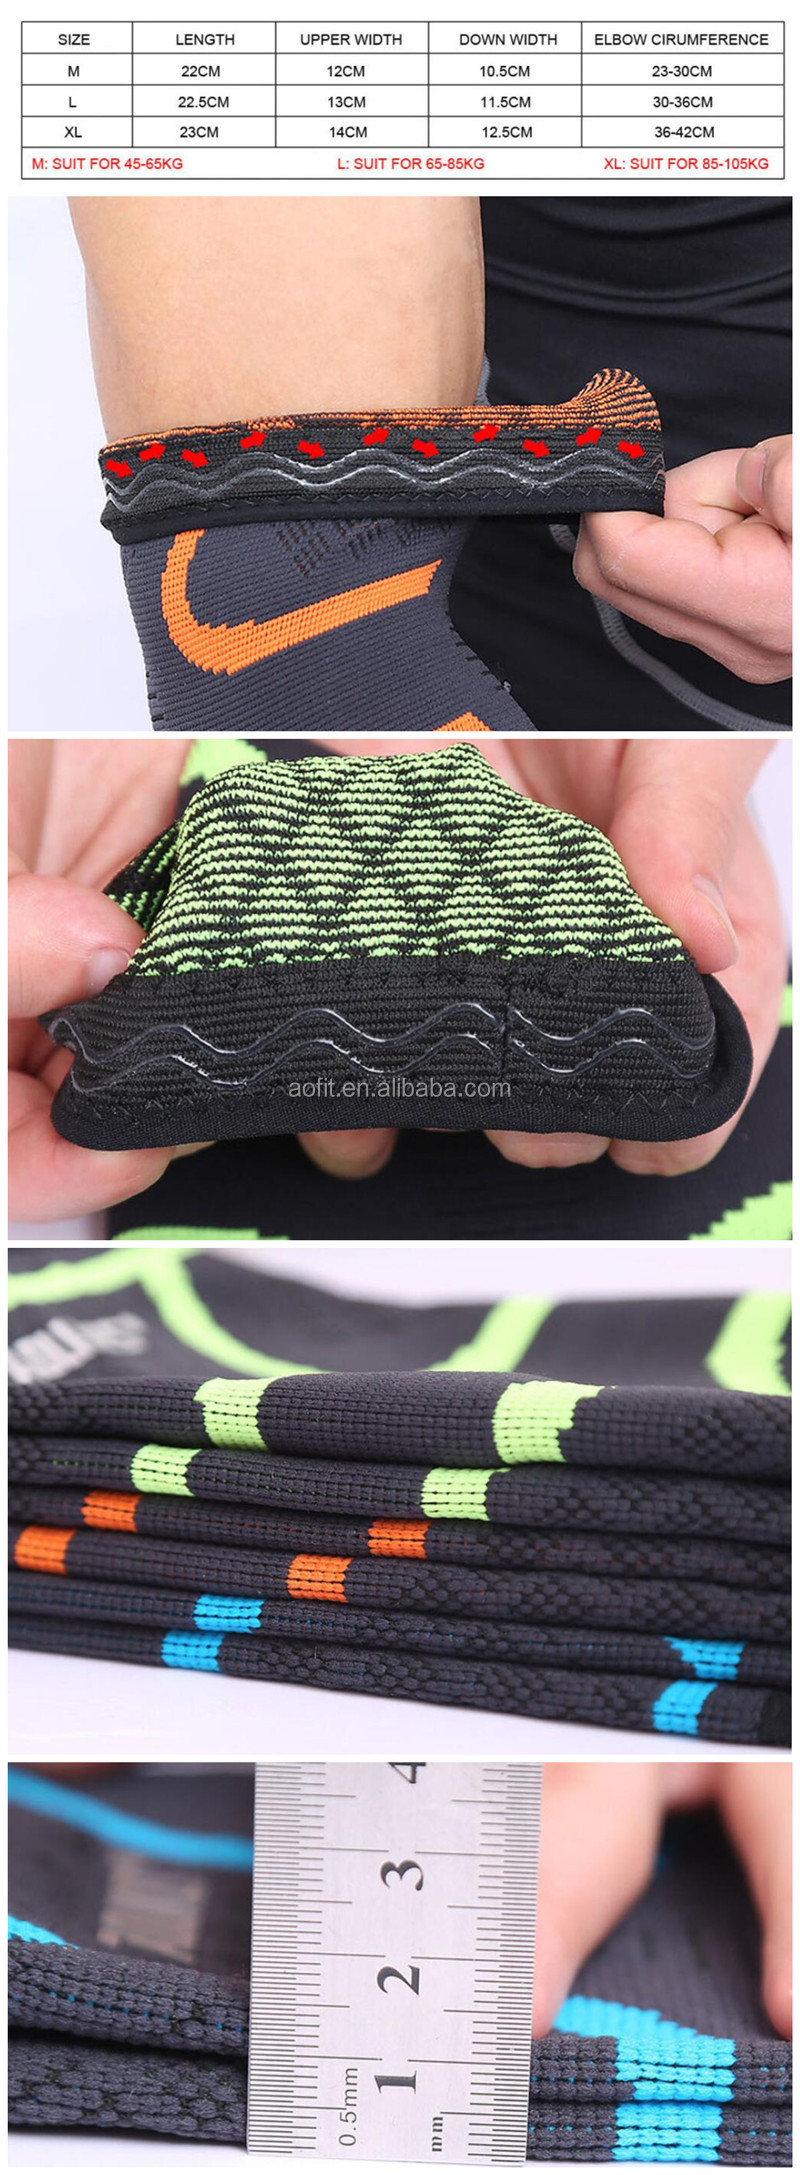 2019 Hot Sale Comfortable Knitting Compression Non-slip Elbow Brace Sleeve for sports kids adult